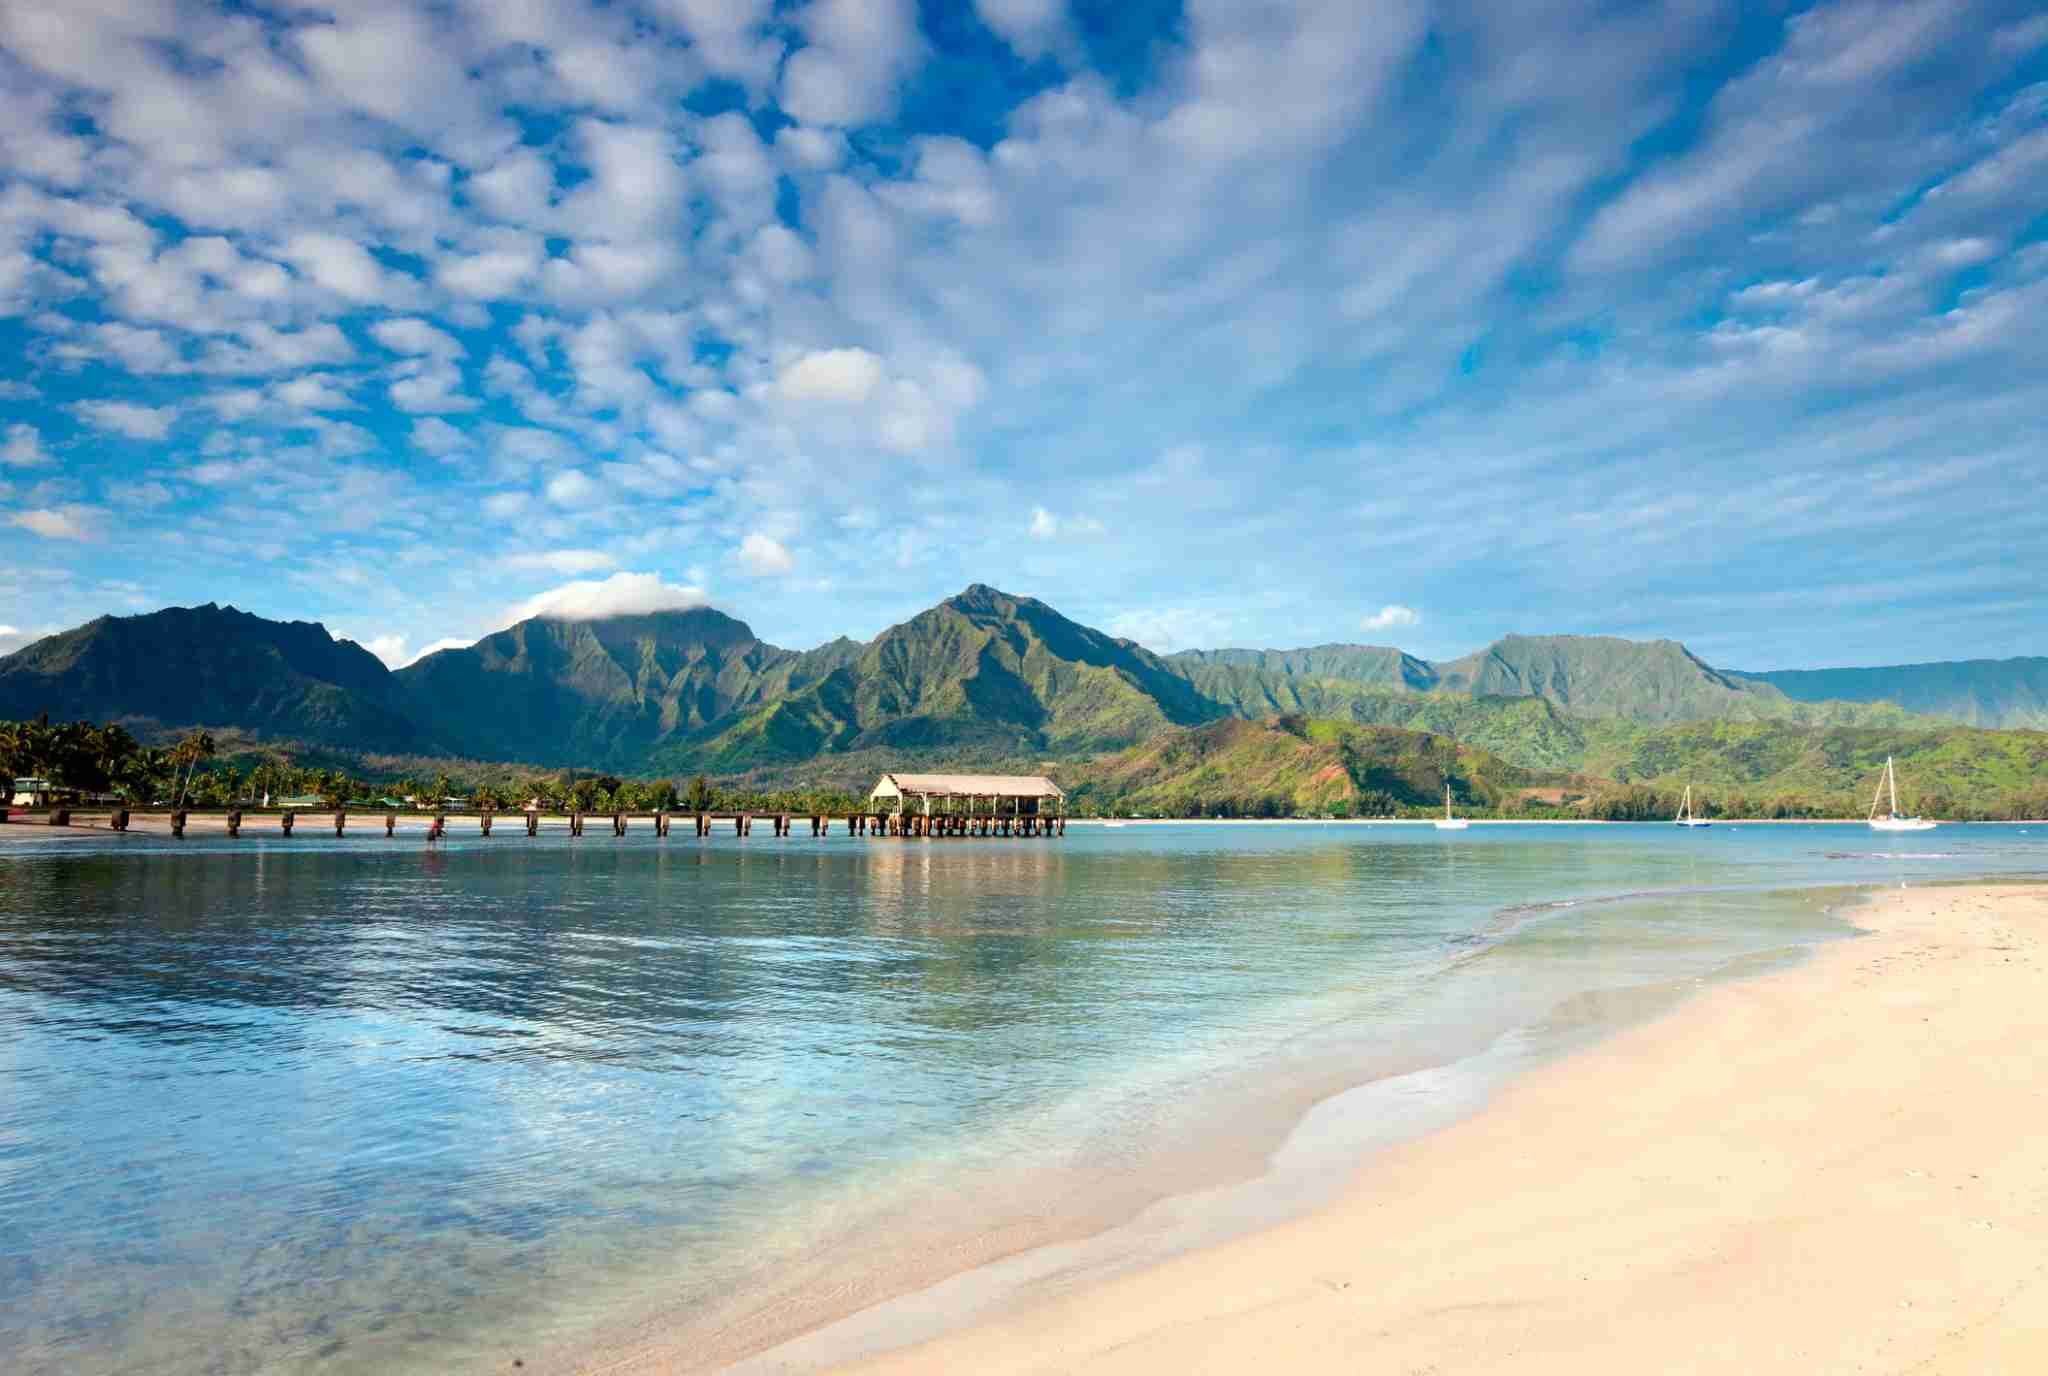 Hanalei Bay (M.M. Sweet / Getty Images)